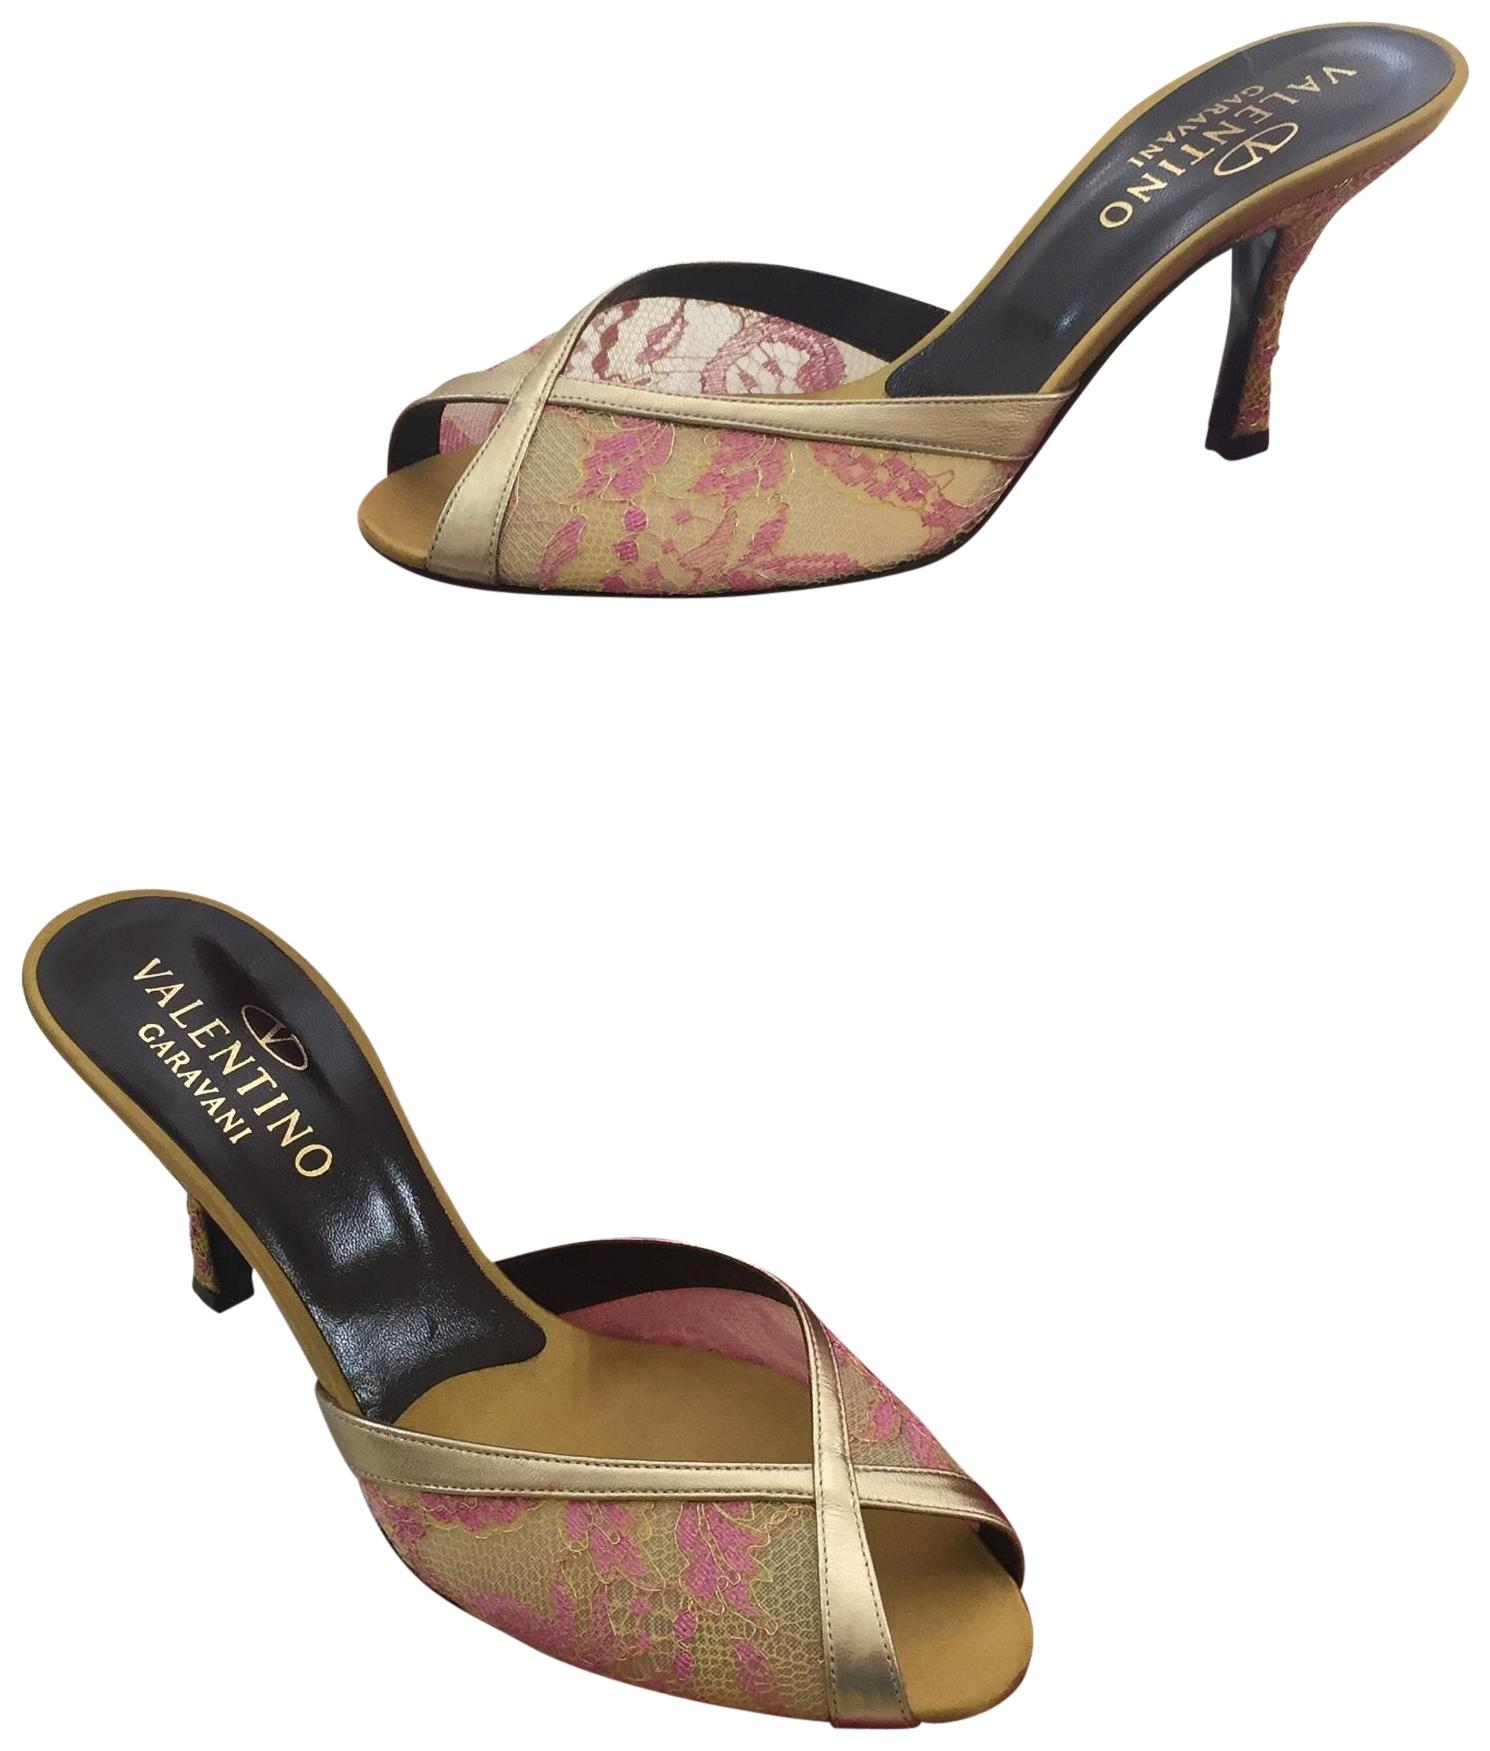 for sale very cheap outlet online VALENTINO GARAVANI Open-toe mules discount enjoy mjKK3z